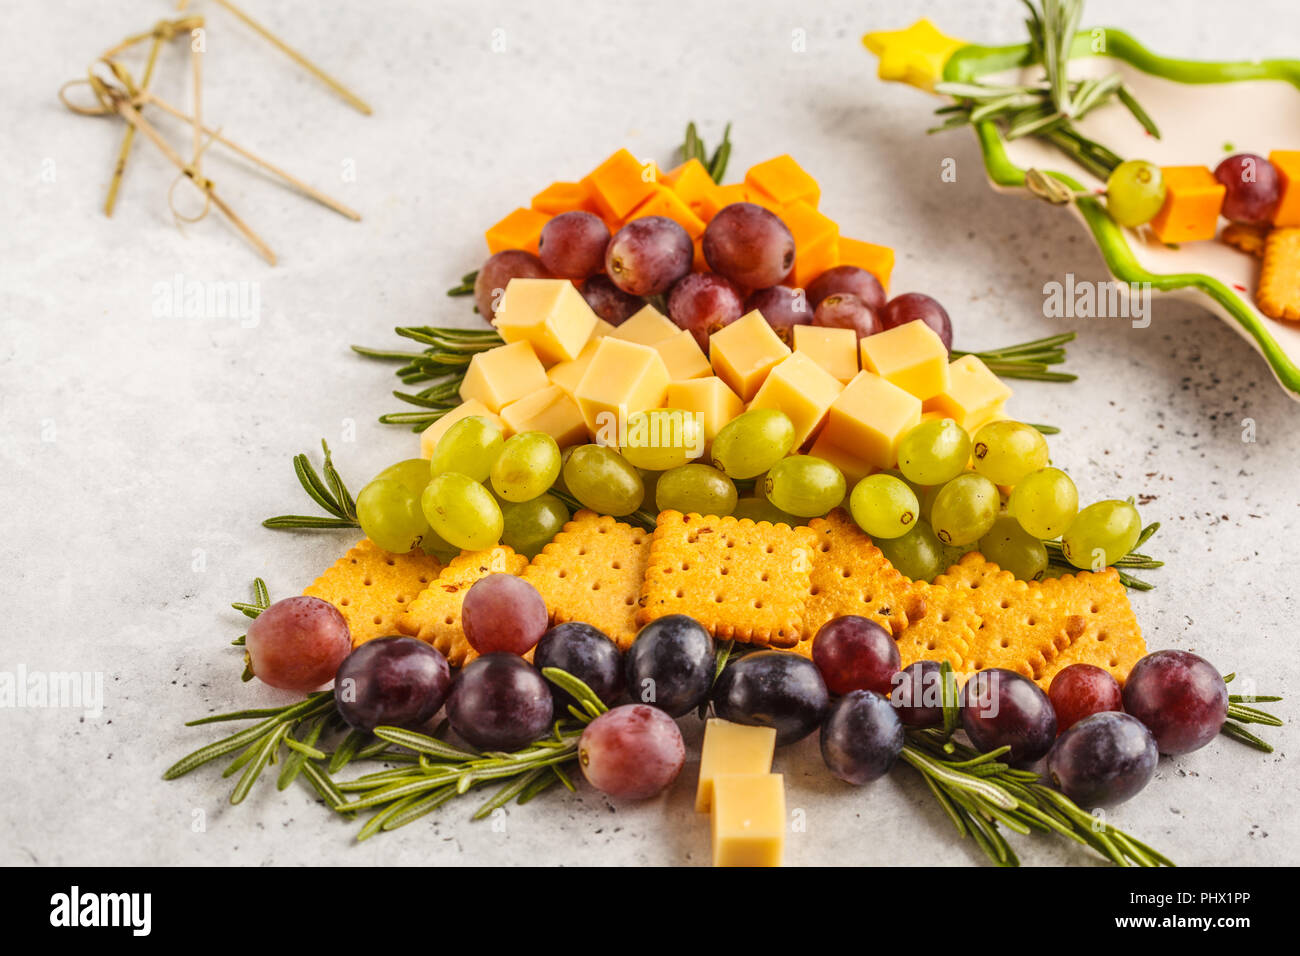 Christmas tree from appetizers: cheese, grapes, crackers. Christmas food concept, white background. Stock Photo